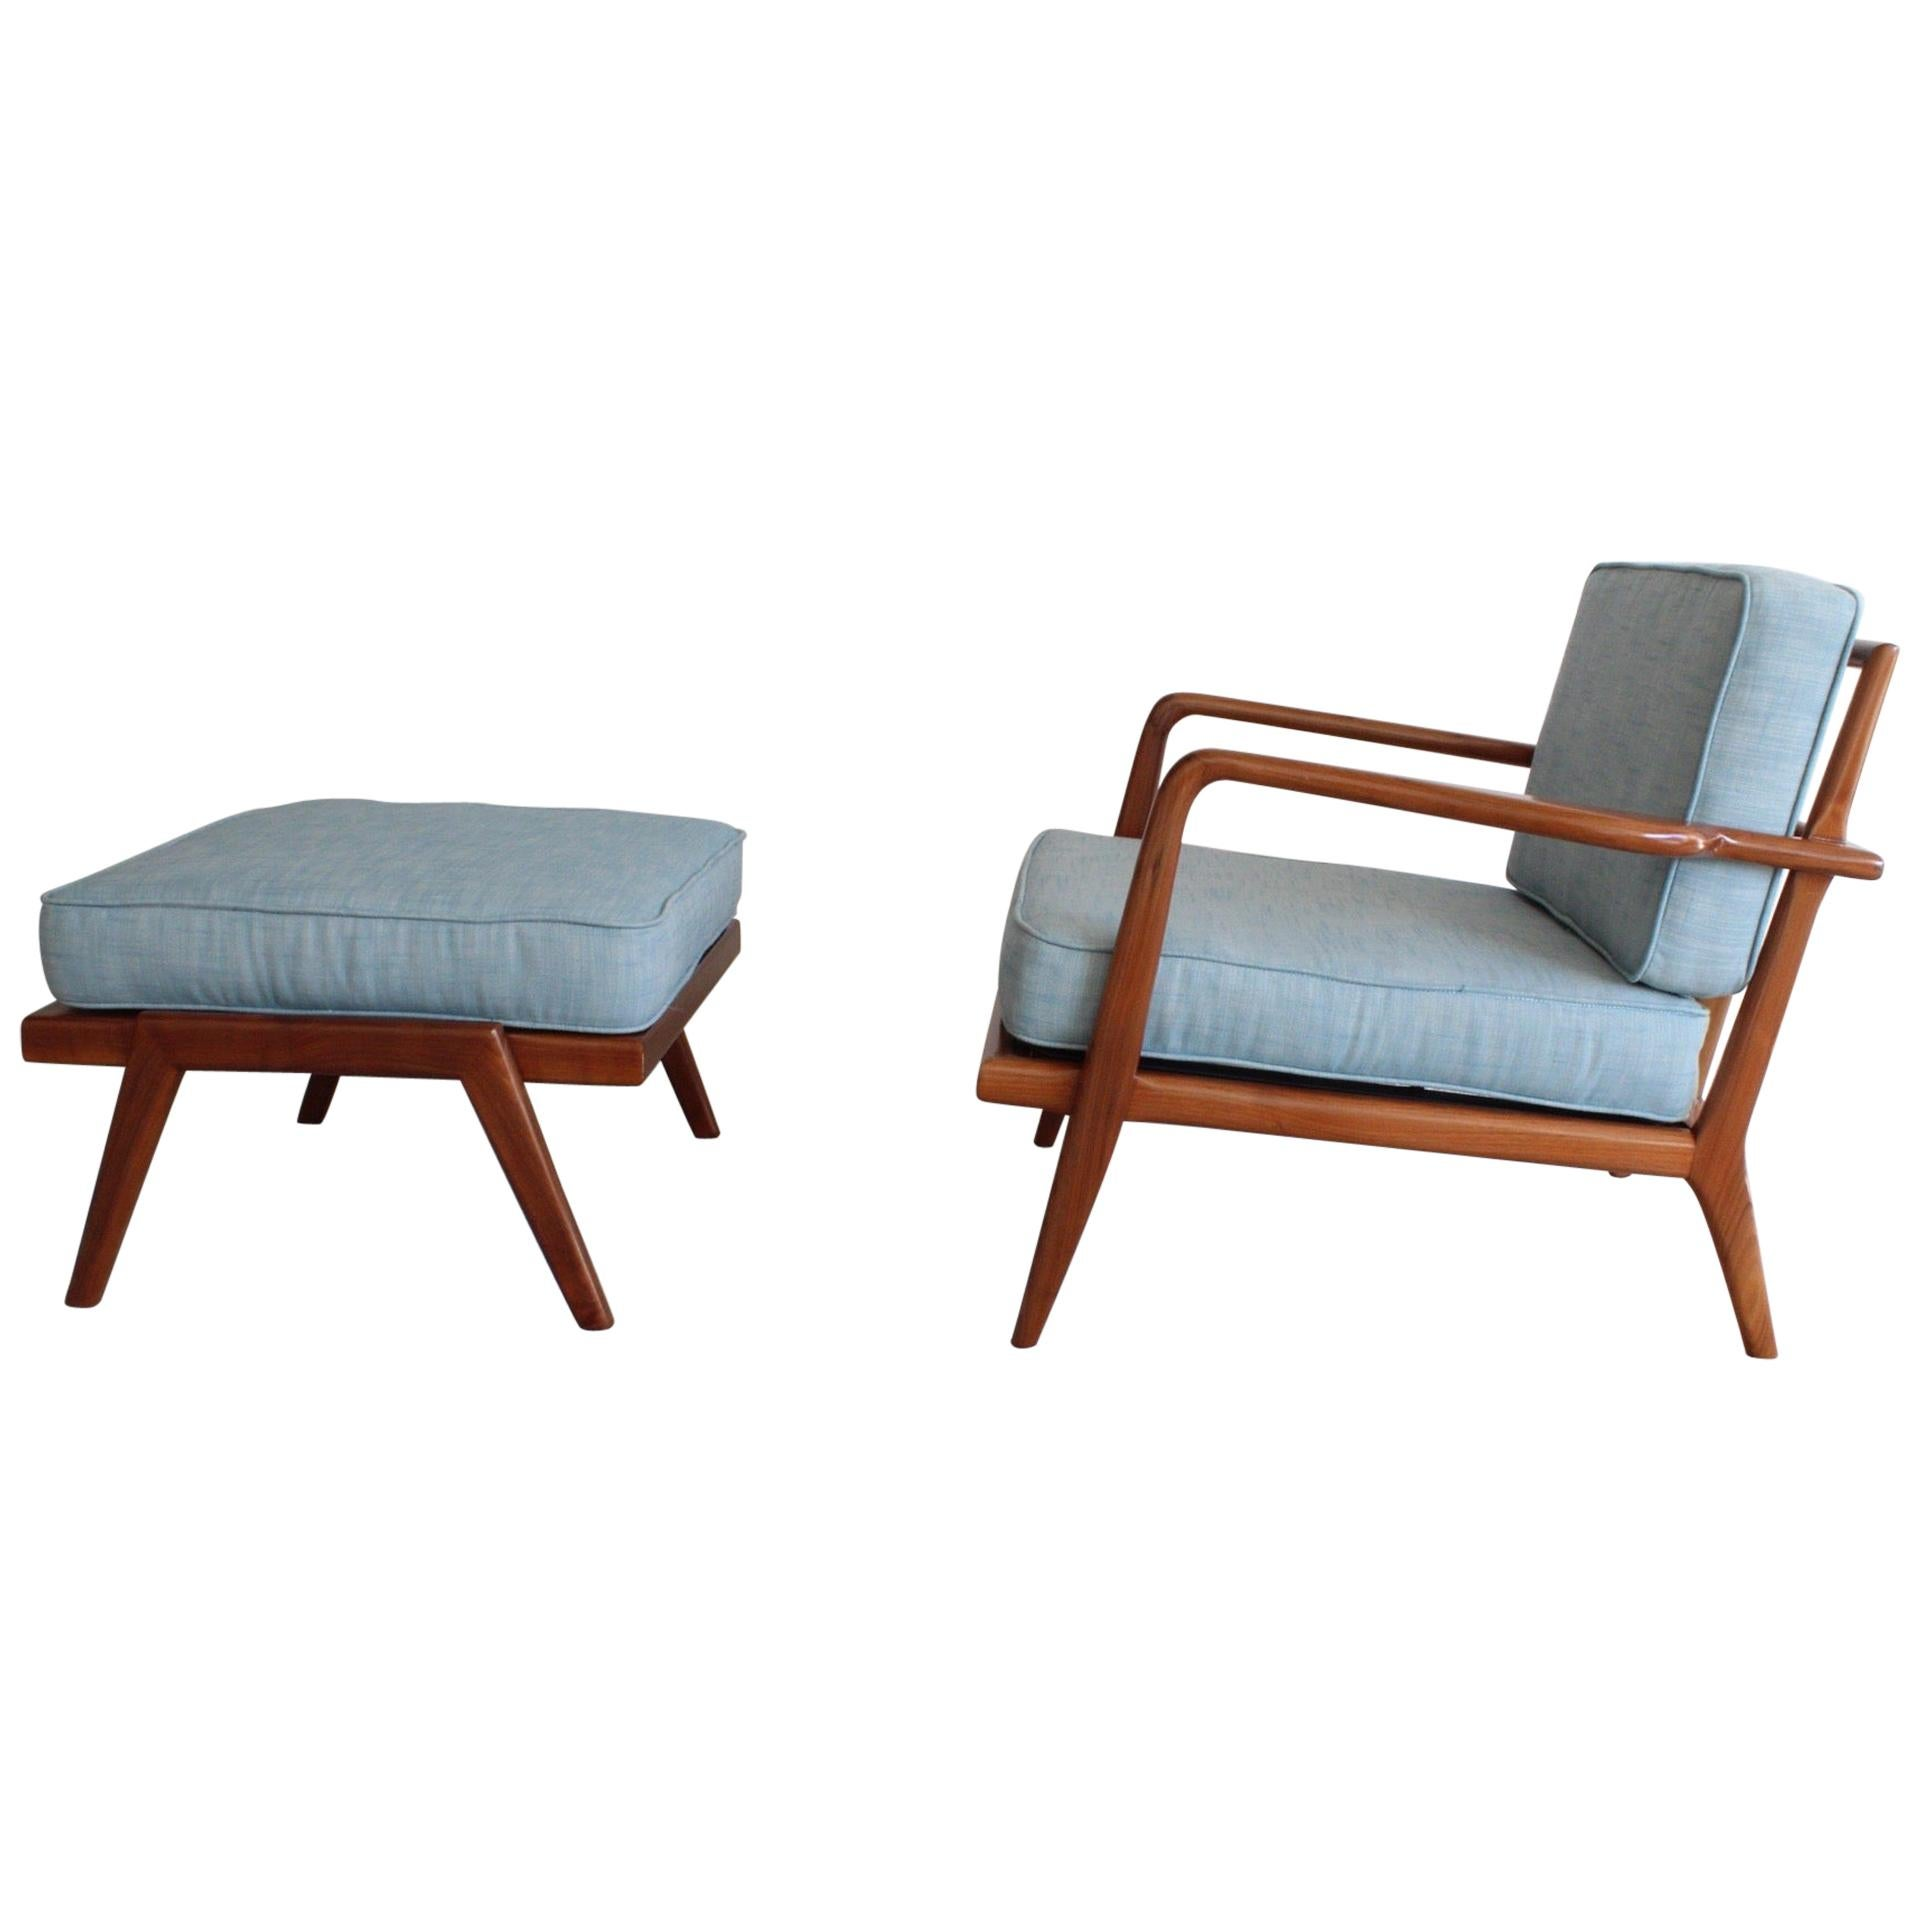 Lounge Chair and Ottoman by Mel Smilow for Smilow-Thielle